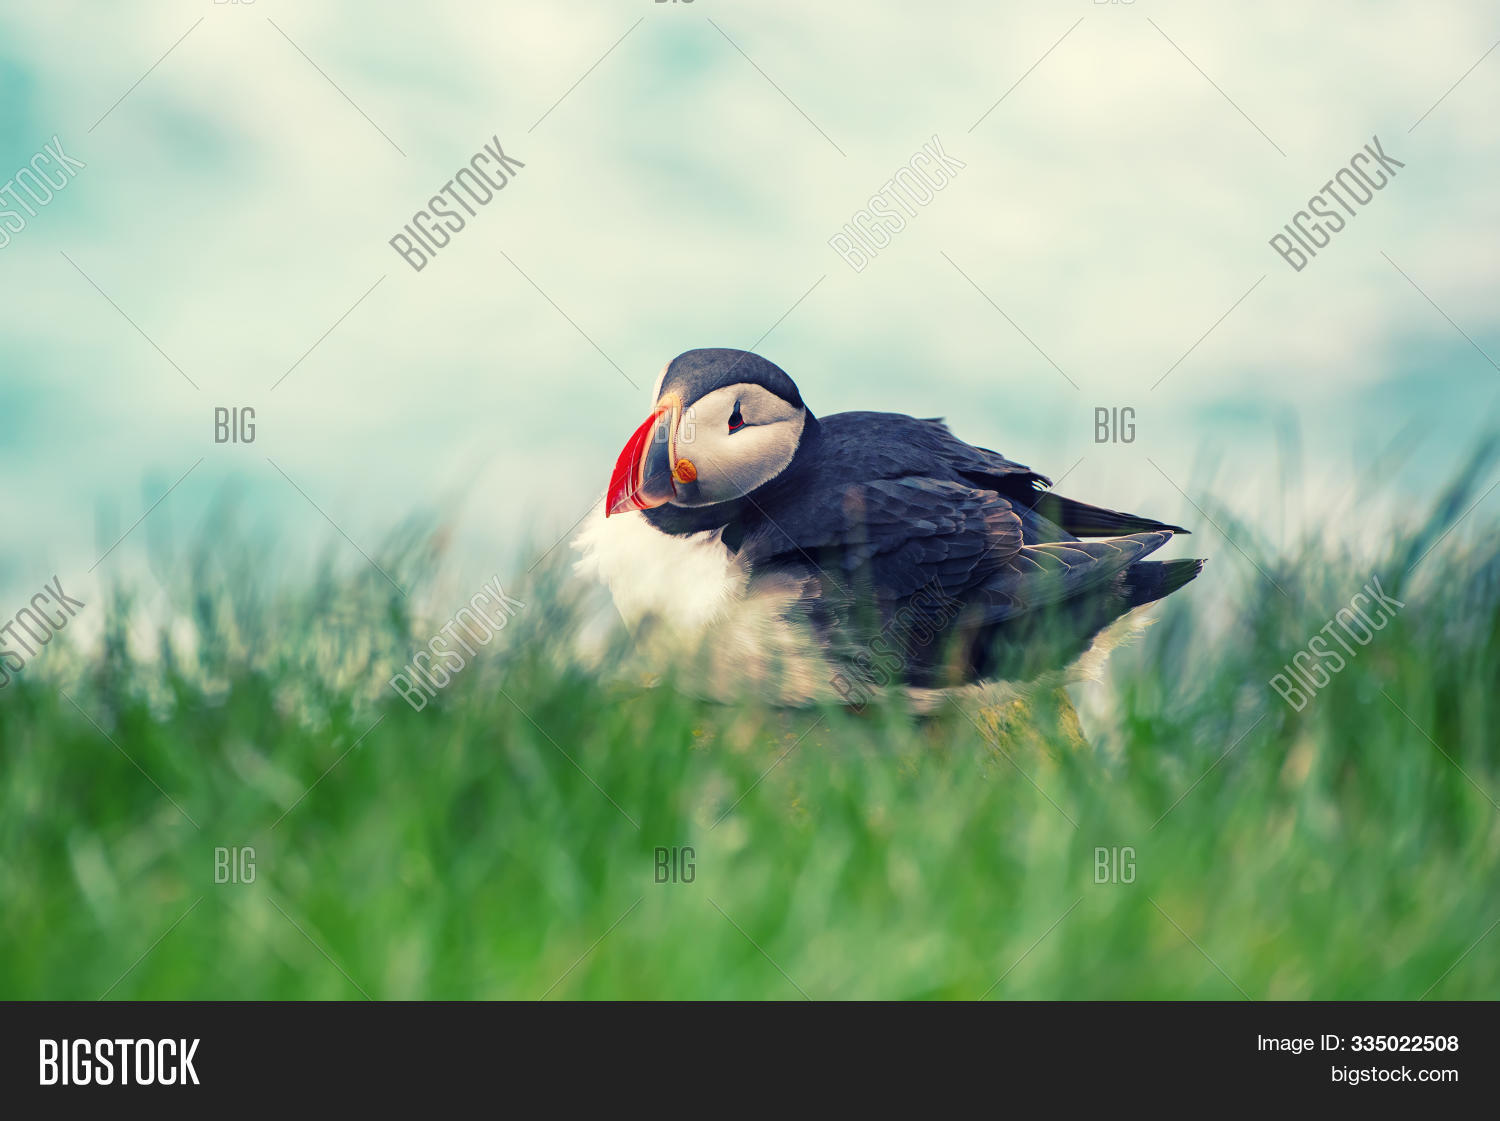 animal,arctic,arctica,atlantic,background,beak,beautiful,bird,black,cliff,close-up,closeup,coast,colorful,common,cute,europe,fauna,fratercula,grass,green,greenland,iceland,icelandic,island,natural,nature,north,northern,norway,ocean,one,orange,portrait,puffin,scandinavia,scandinavian,sea,seabird,single,stone,summer,travel,view,water,white,wild,wildlife,wing